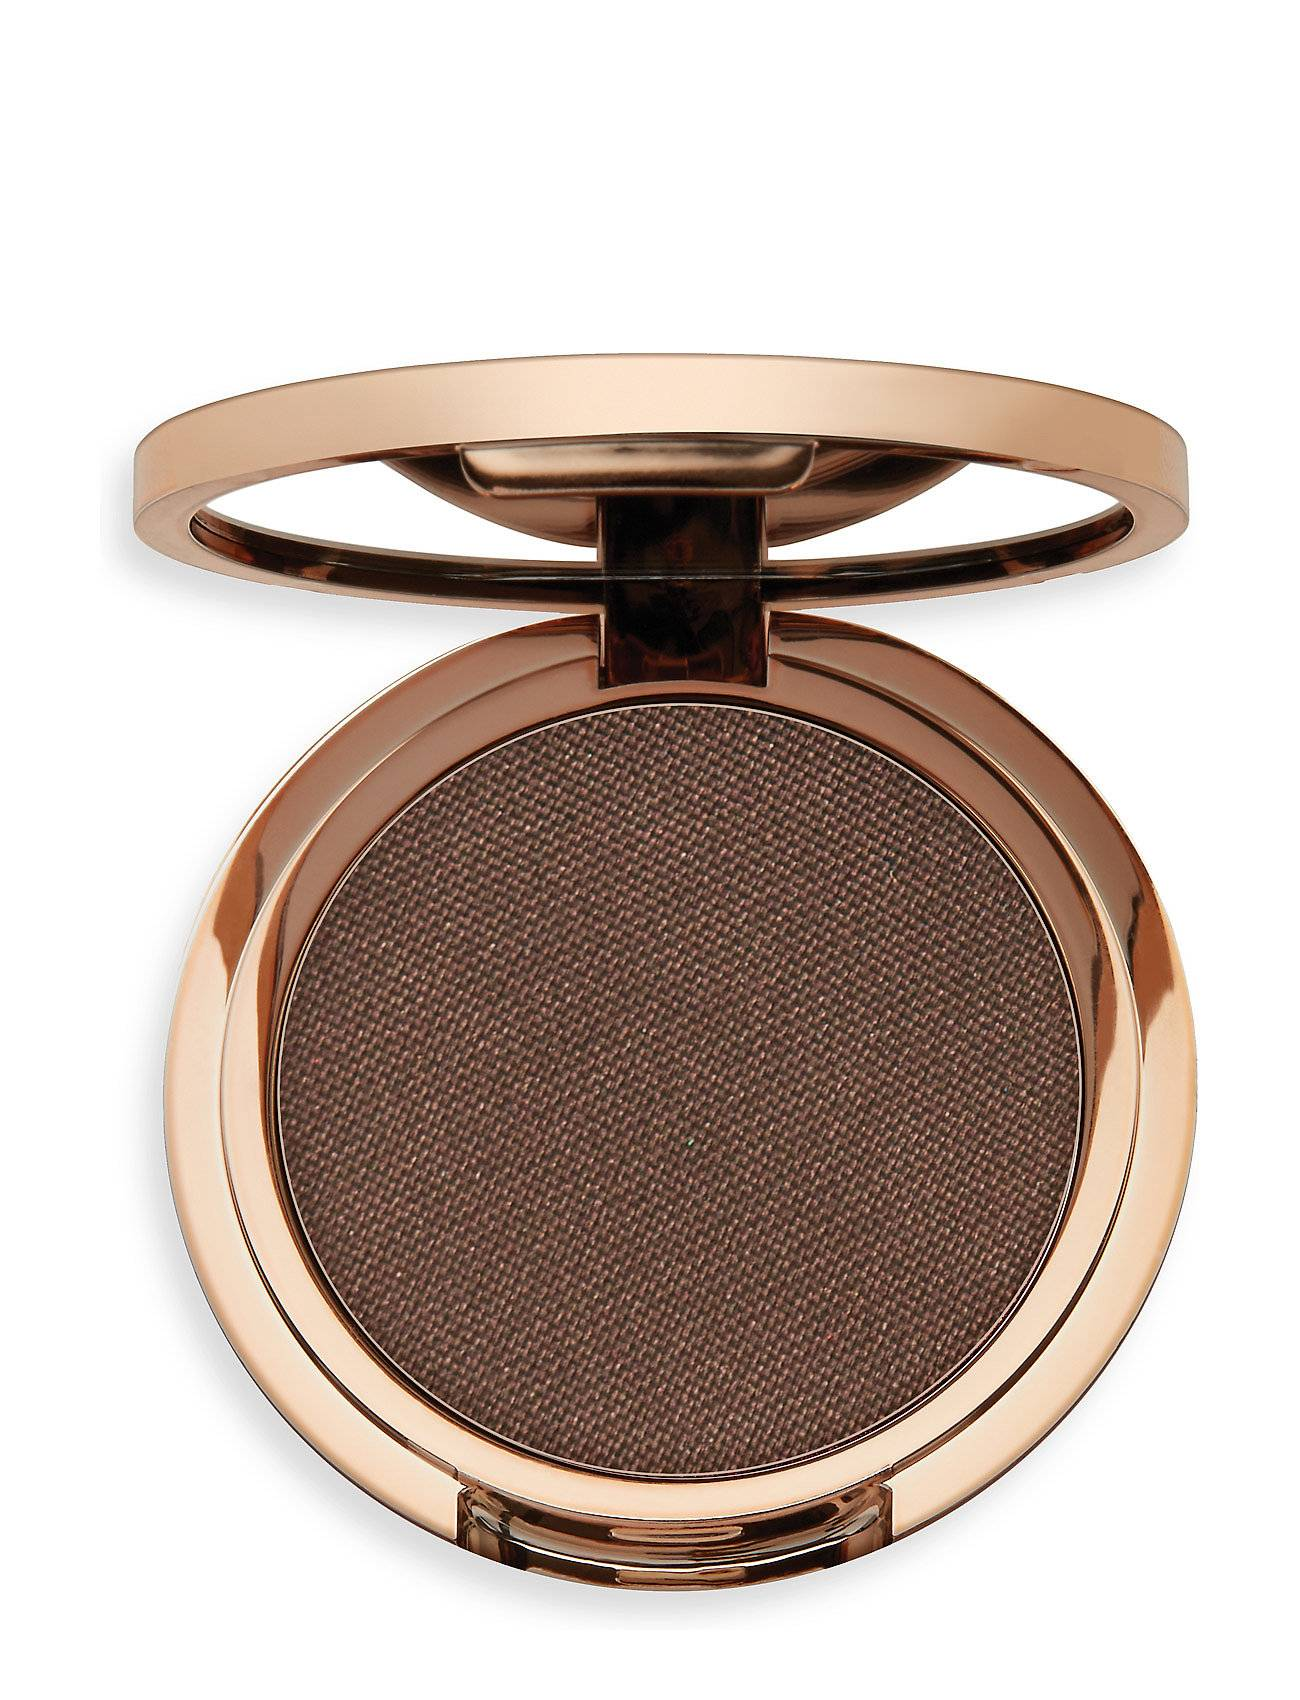 Nude by Nature Pressed Eyeshadow 02st Beauty WOMEN Makeup Eyes Eyeshadow - Not Palettes Ruskea Nude By Nature